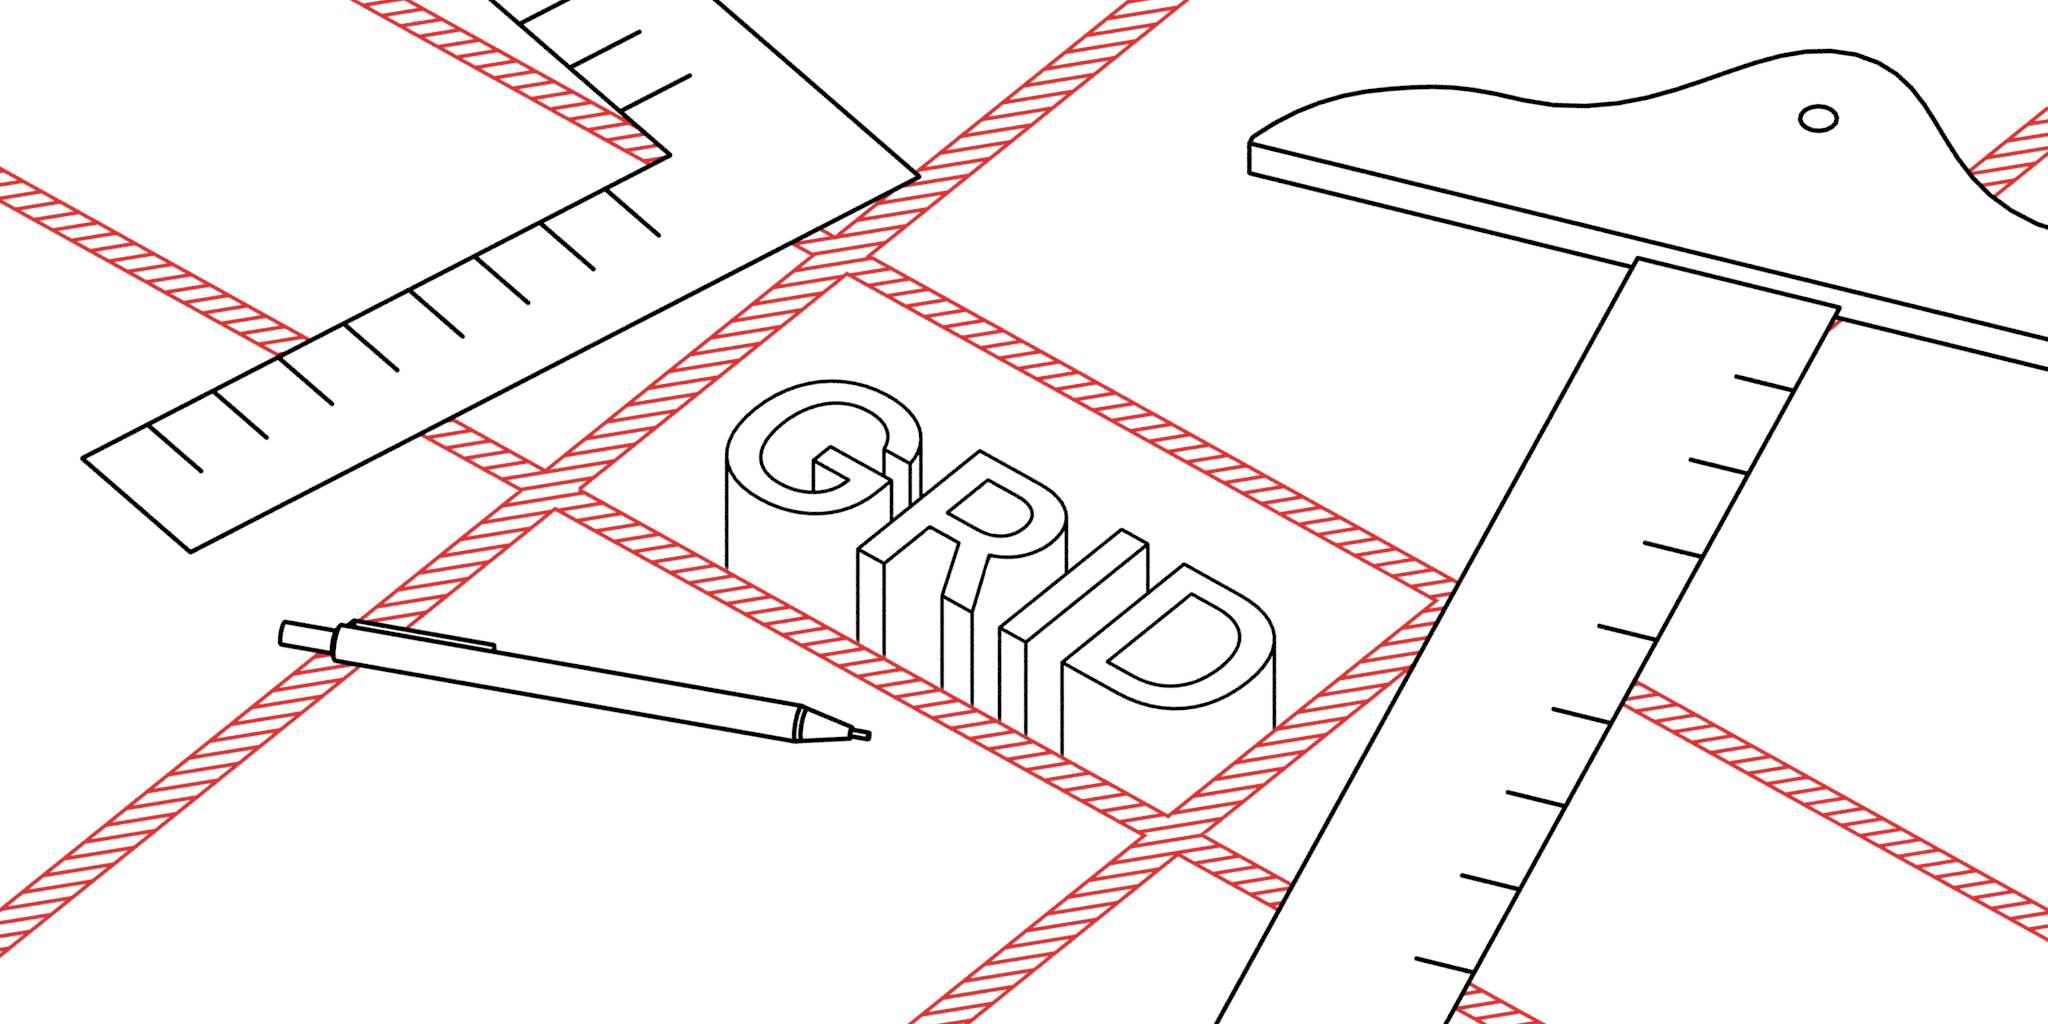 Illustration of a CSS grid being drawn